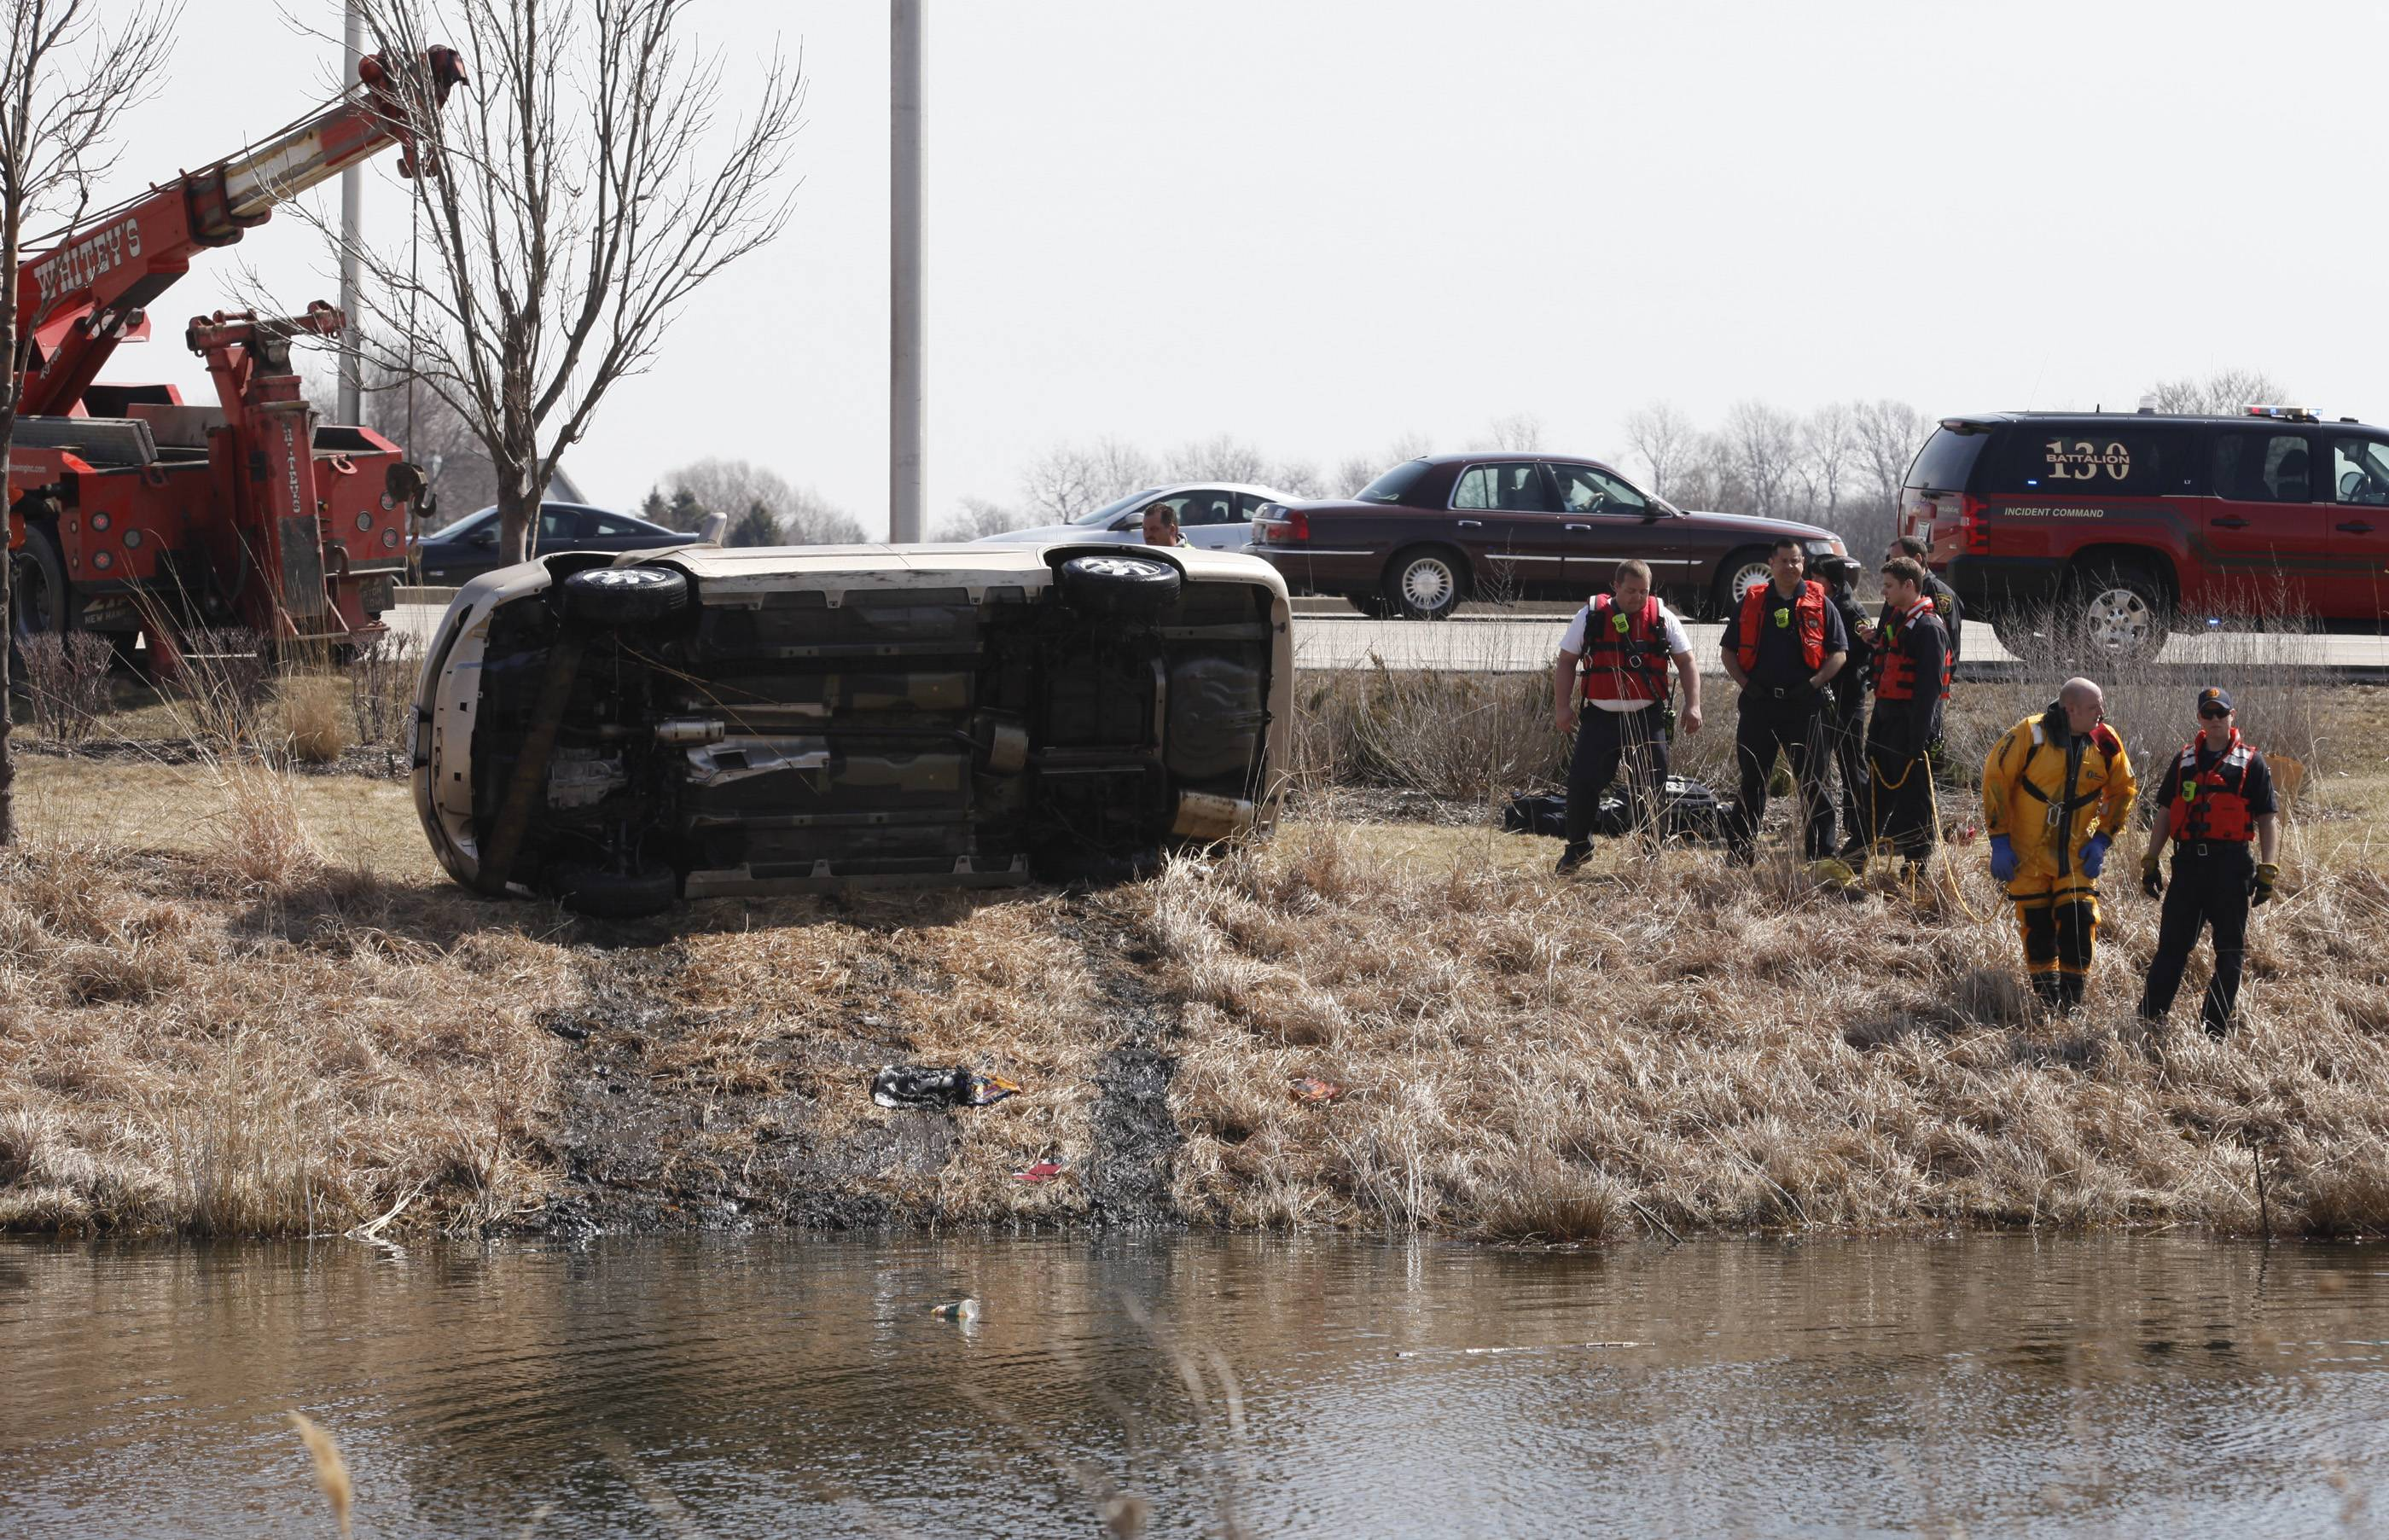 Paul Mellor, the 57-year-old Algonquin man who drove his car into a pond near Algonquin Commons Wednesday, remained in critical condition Thursday at Advocate Sherman Hospital, a hospital spokeswoman said. Mellor's Honda Accord was pulled from the water after first responders smashed the vehicle's sunroof and pulled him out of the sinking car.